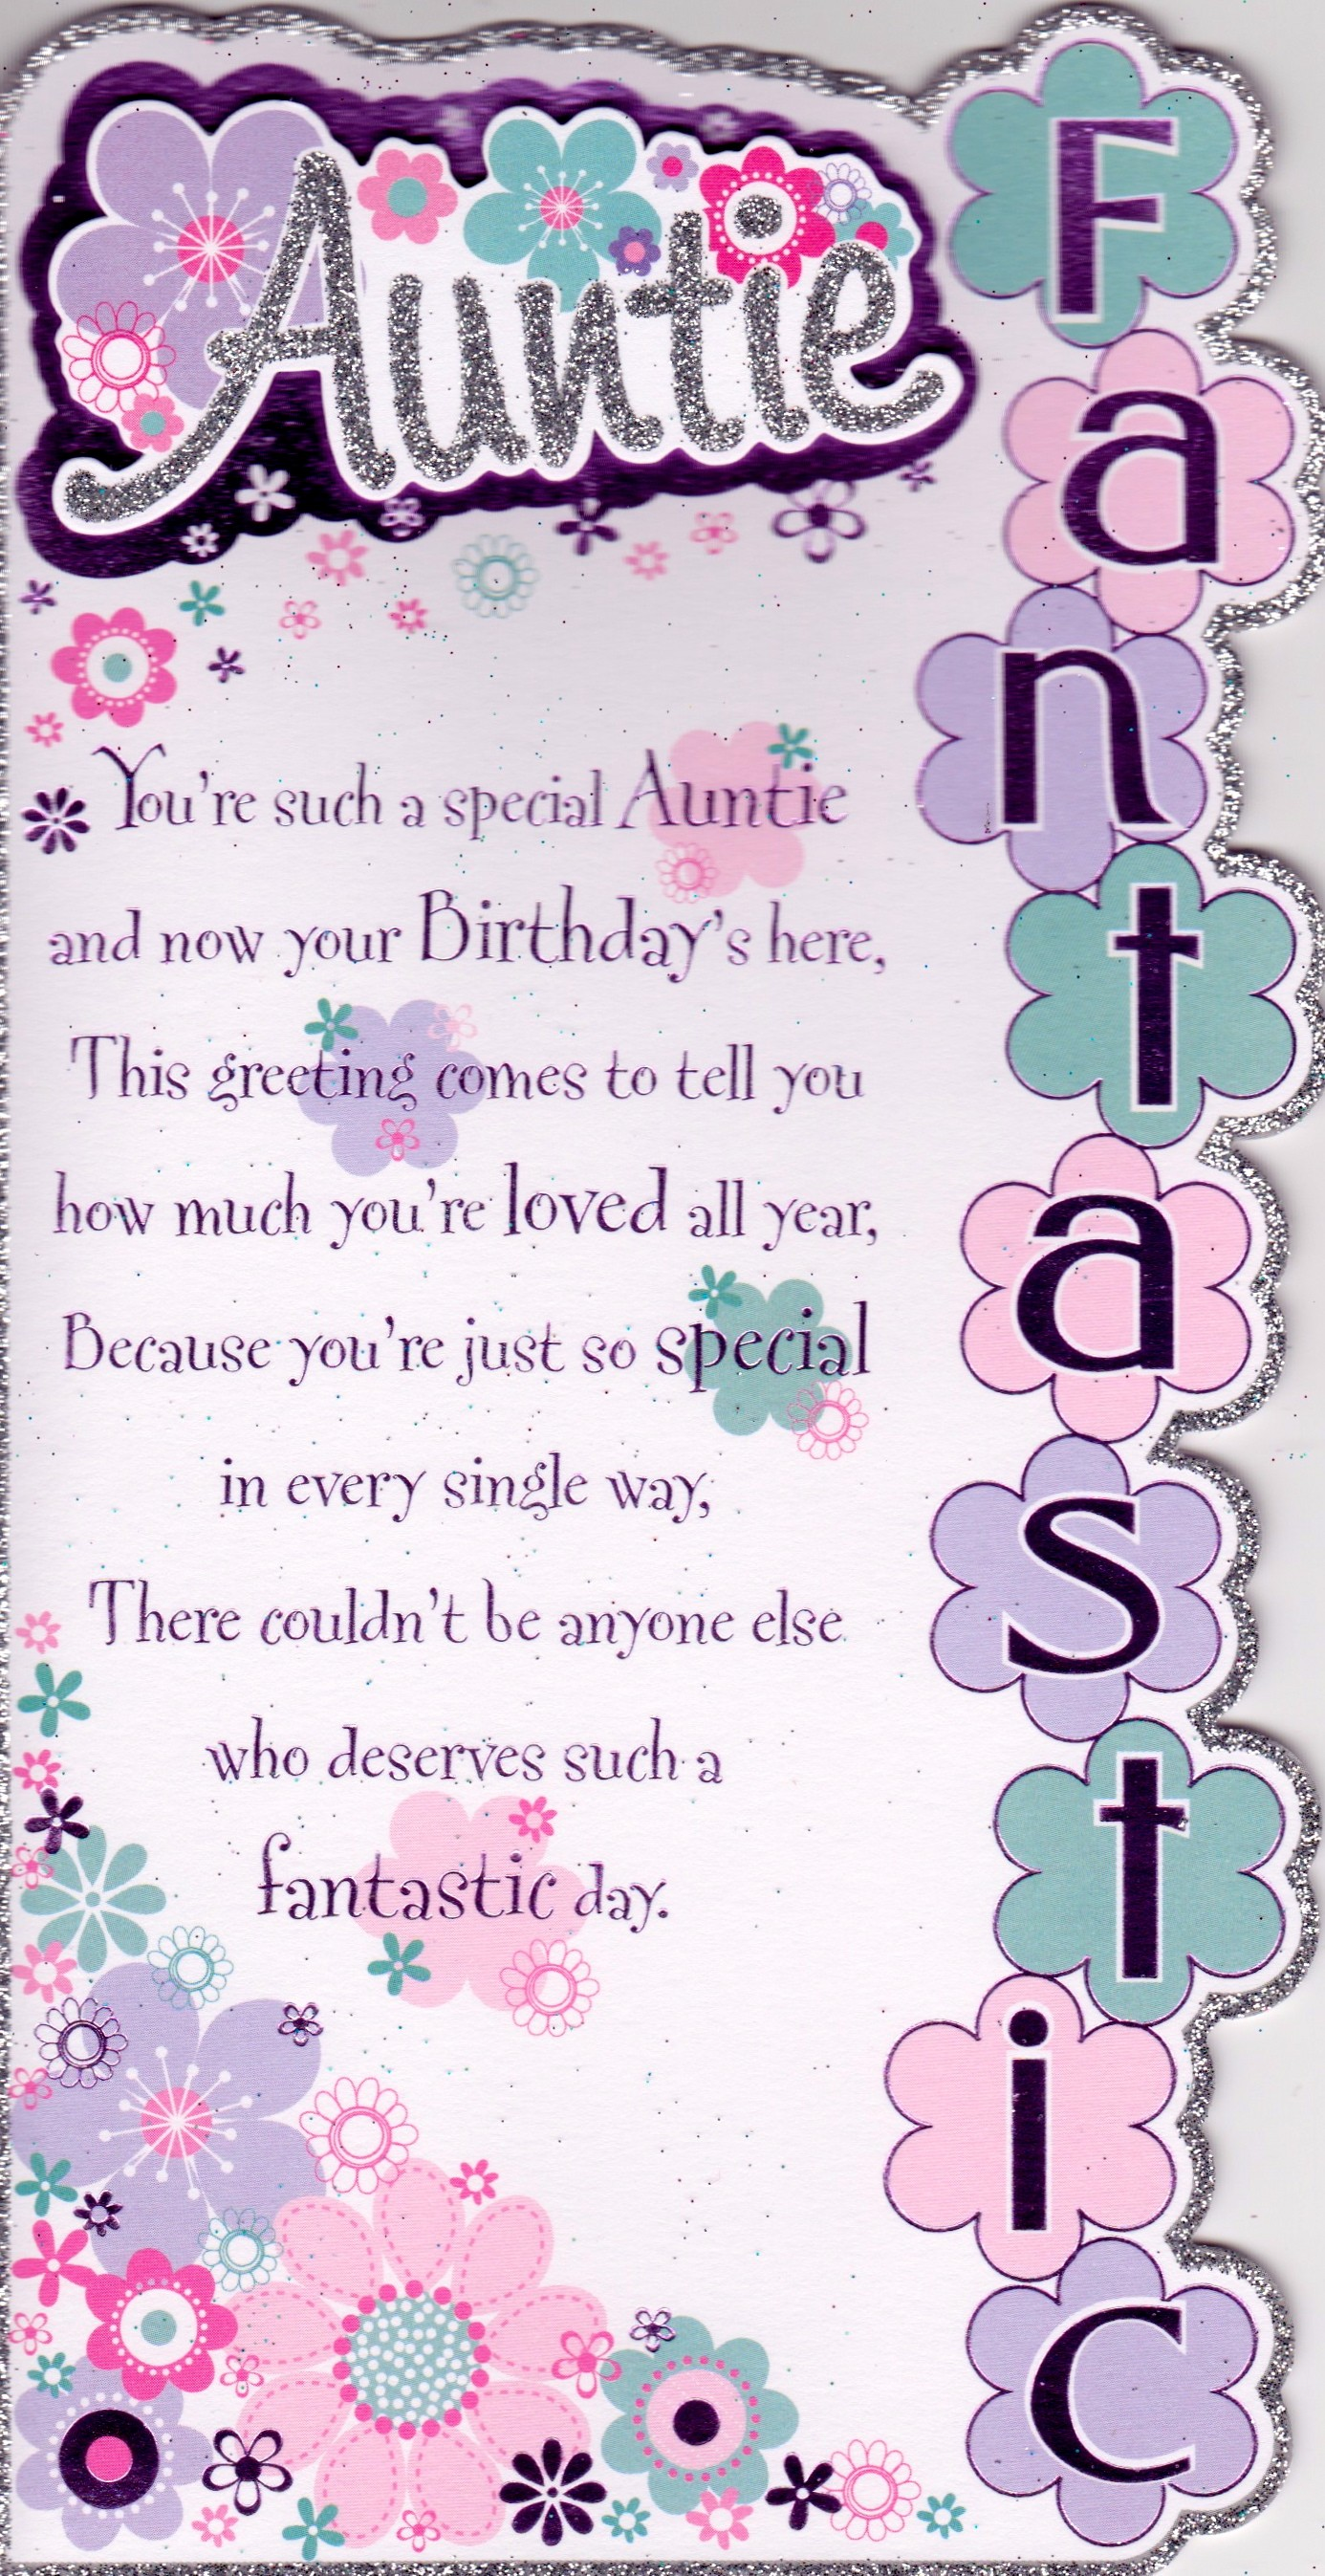 birthday greetings message for auntie ; birthday-wishes-for-auntie-cute-7-impressive-birthday-wishes-for-aunty-plan-of-birthday-wishes-for-auntie